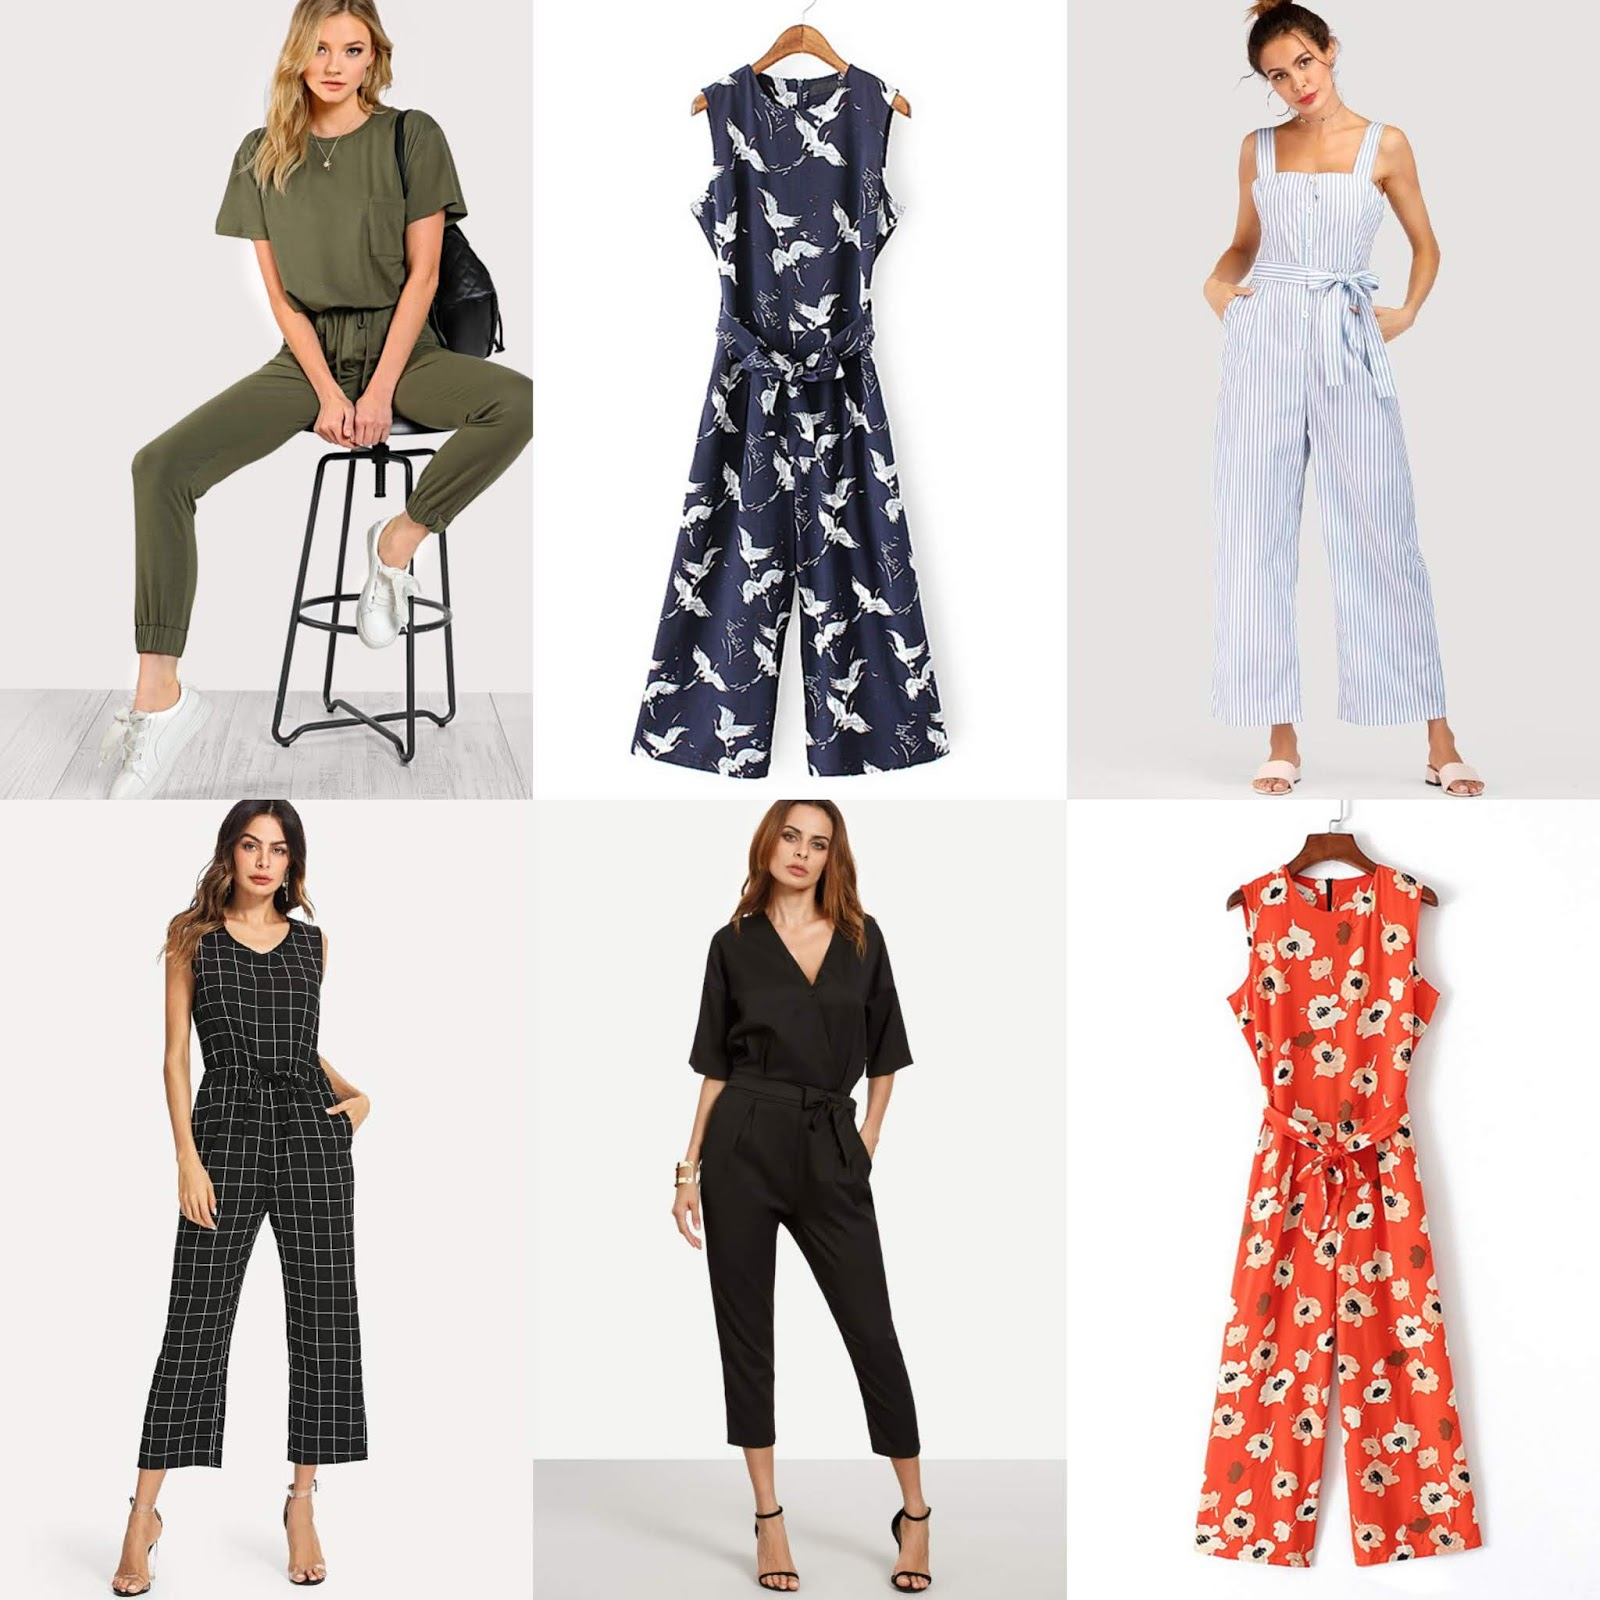 b50bcb9e8eb If you are looking to try out the jumpsuit trend and are on a budget